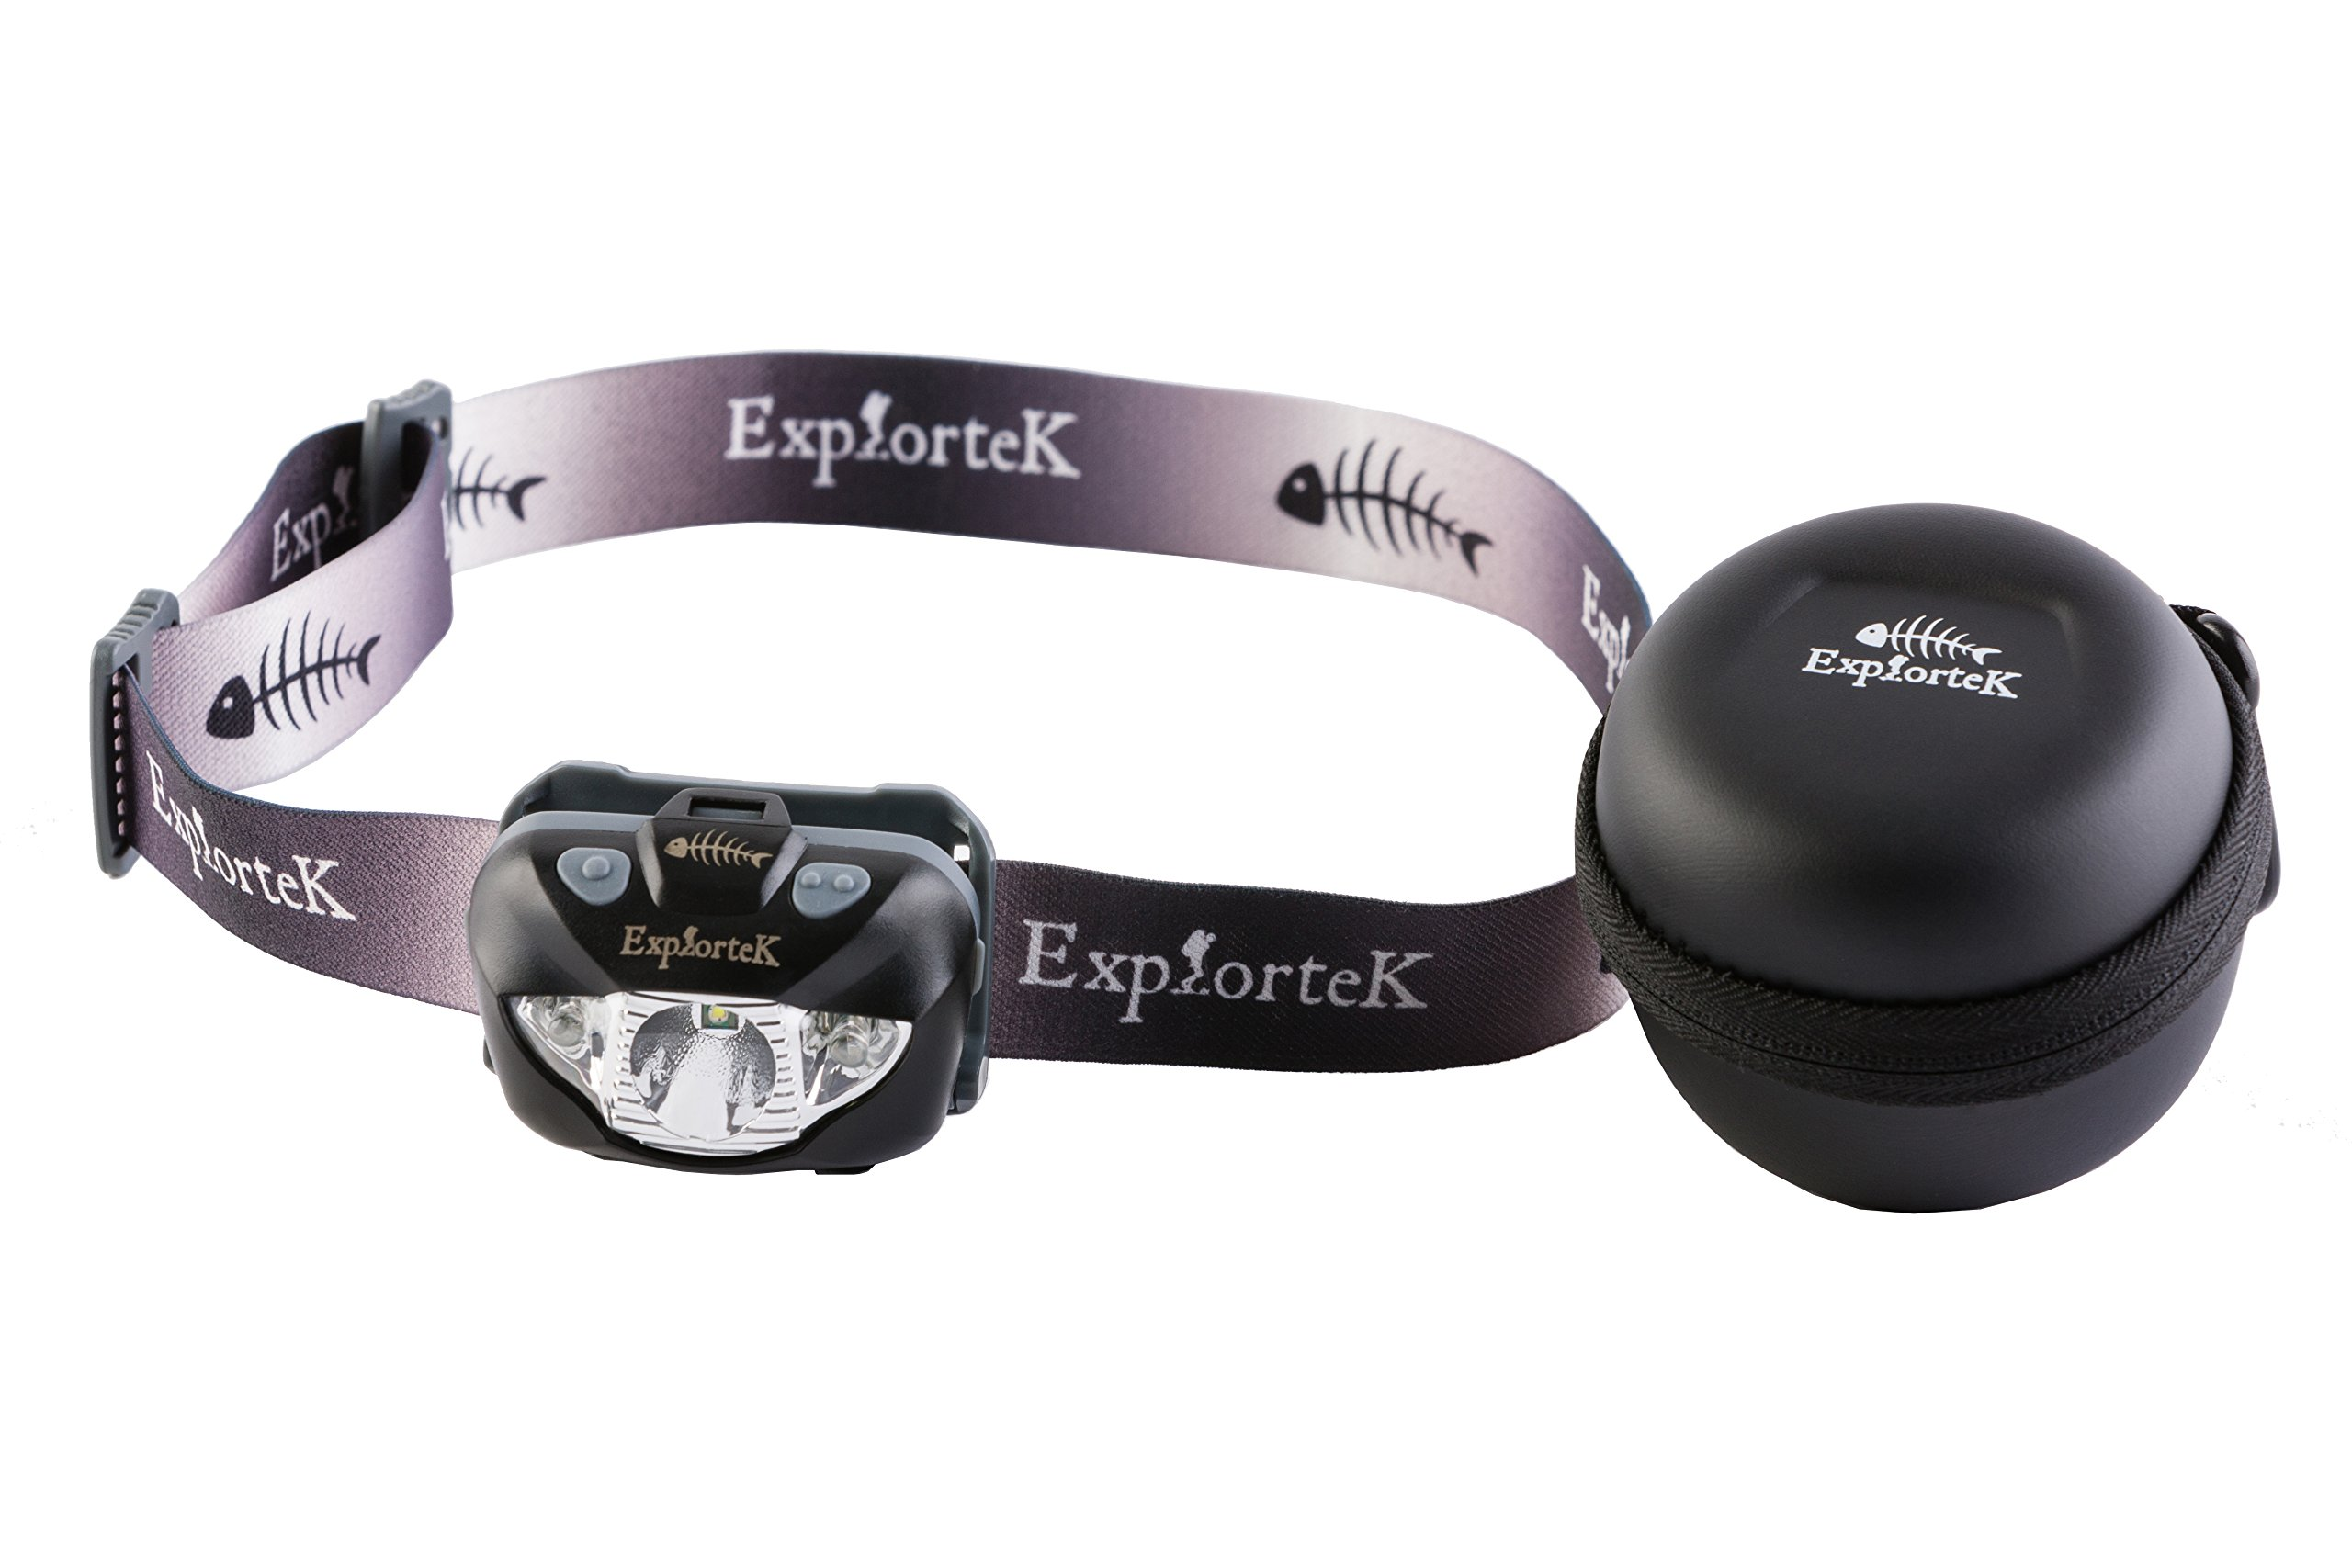 Explortek LED Headlamp Flashlight with Red and White Light Plus Travel Case - Super Bright 168 Lumen Cree Headlight for Hiking Running Camping Hunting - Waterproof IPX6 - Duracell Batteries Included by Explortek